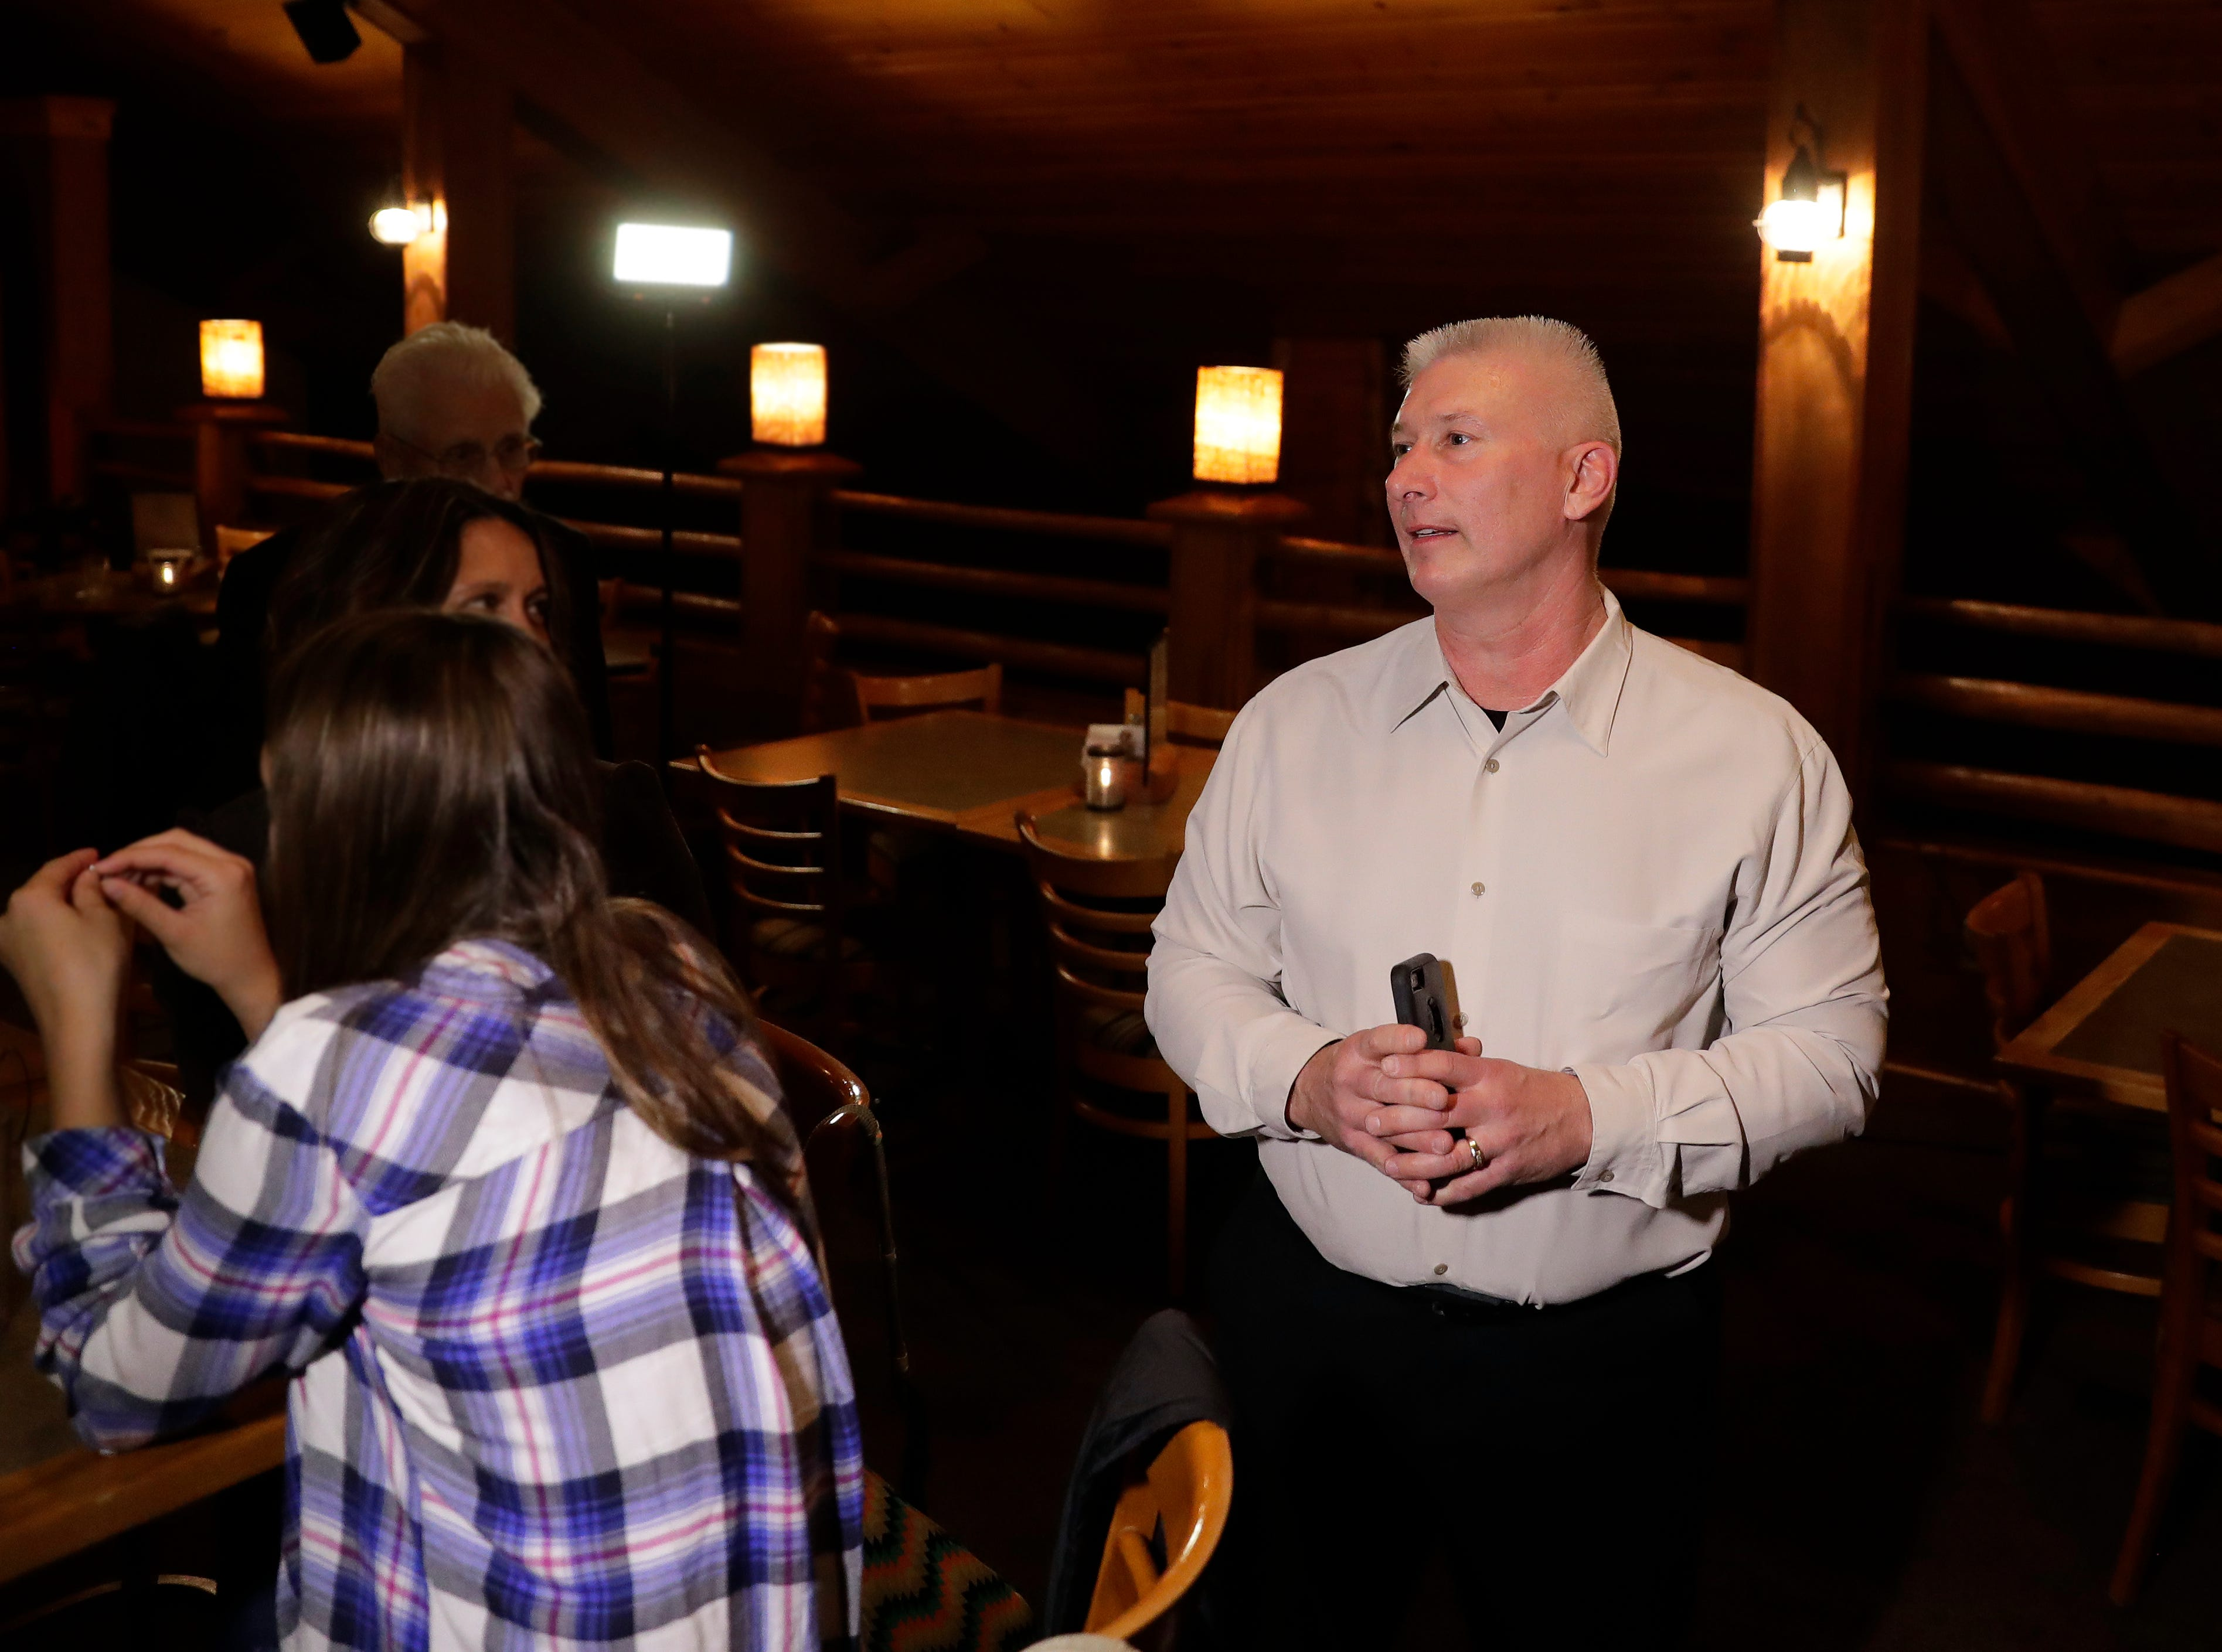 Green Bay mayoral candidate Patrick Buckley thanks supporters at Mackinaw's Grill & Spirits after learning he had lost the election to Eric Genrich on April 2, 2019.